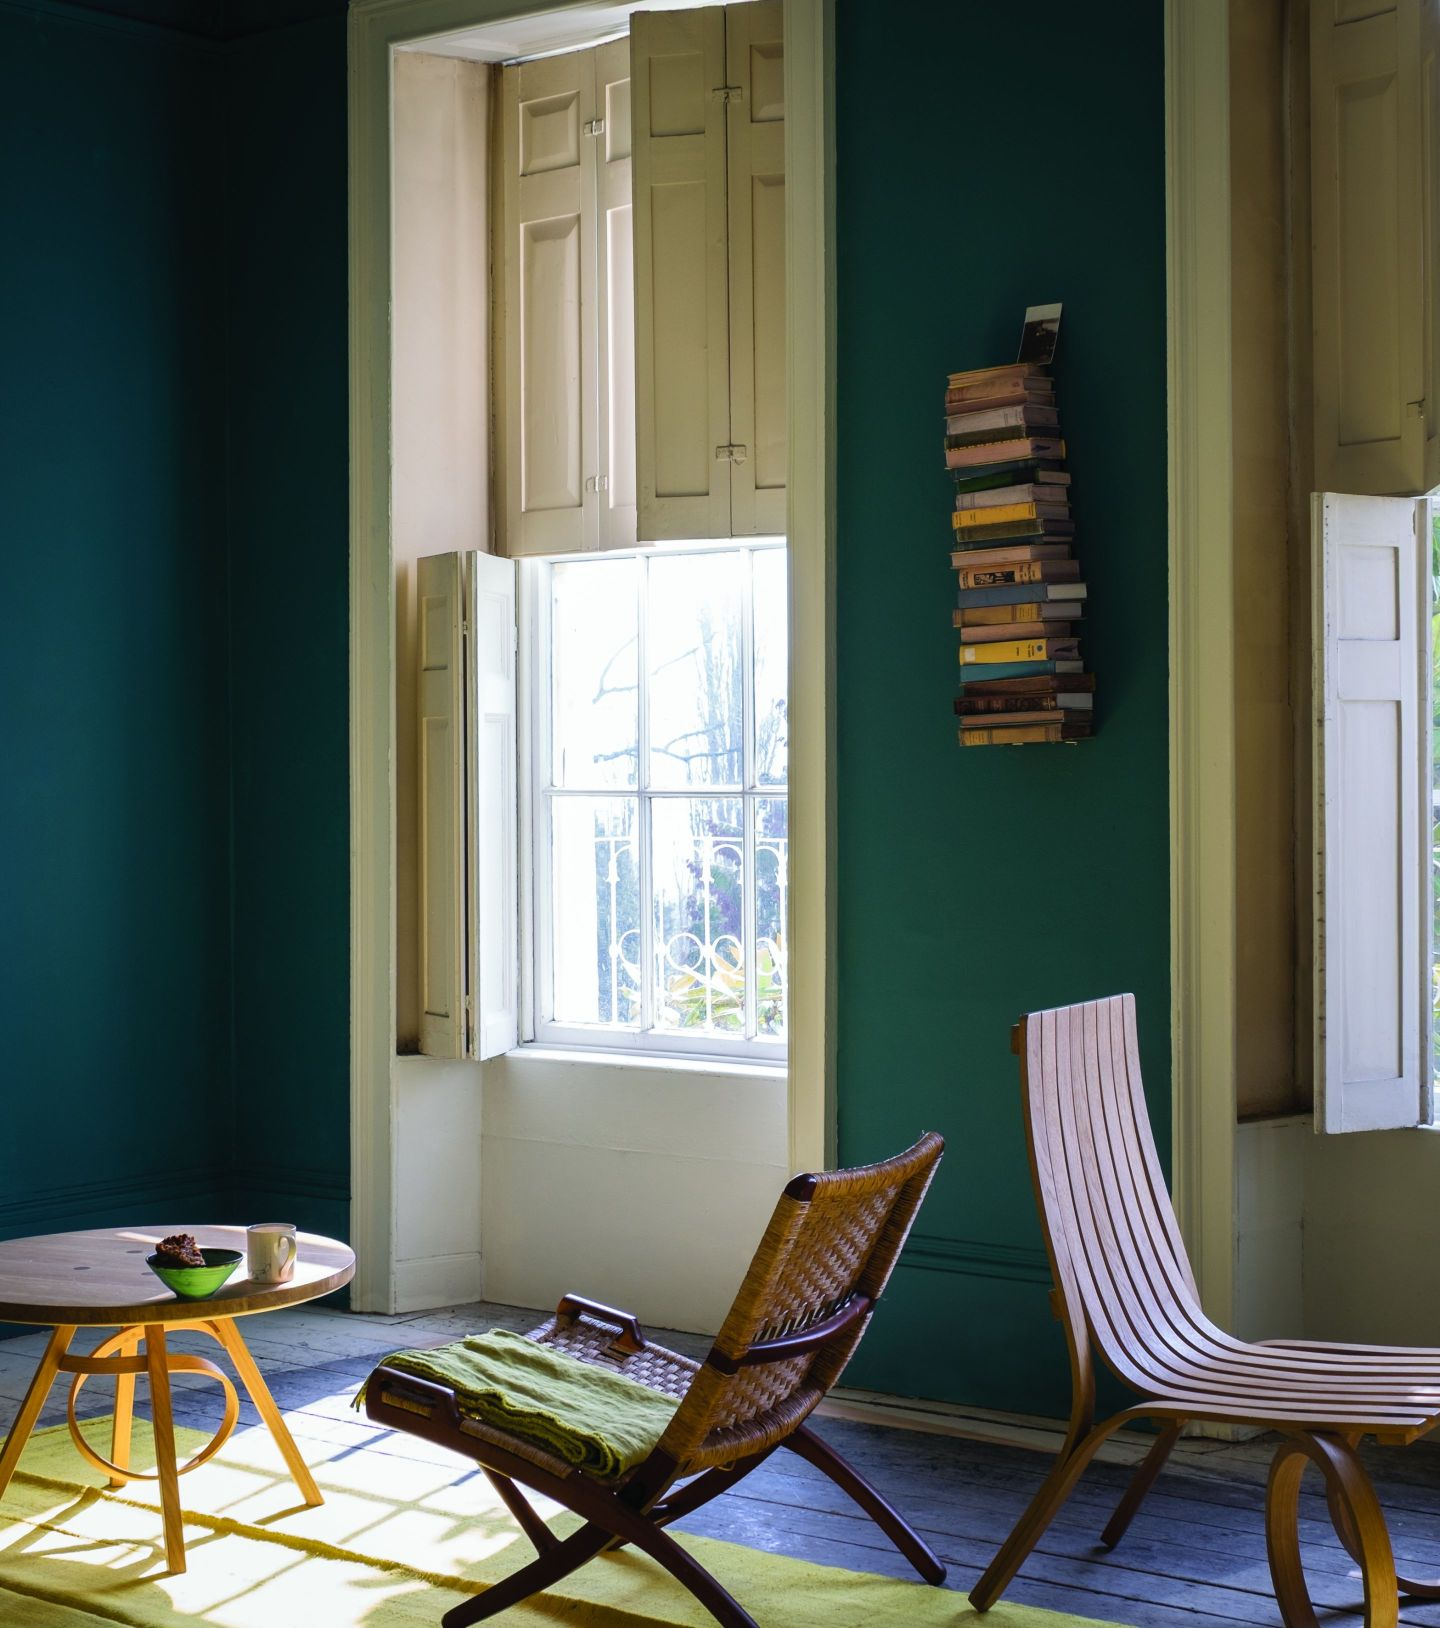 FarrowBall_1360427_VARDONo288.jpg-1440x1628 Paint Inspiration: 20 Colorful Rooms We Love